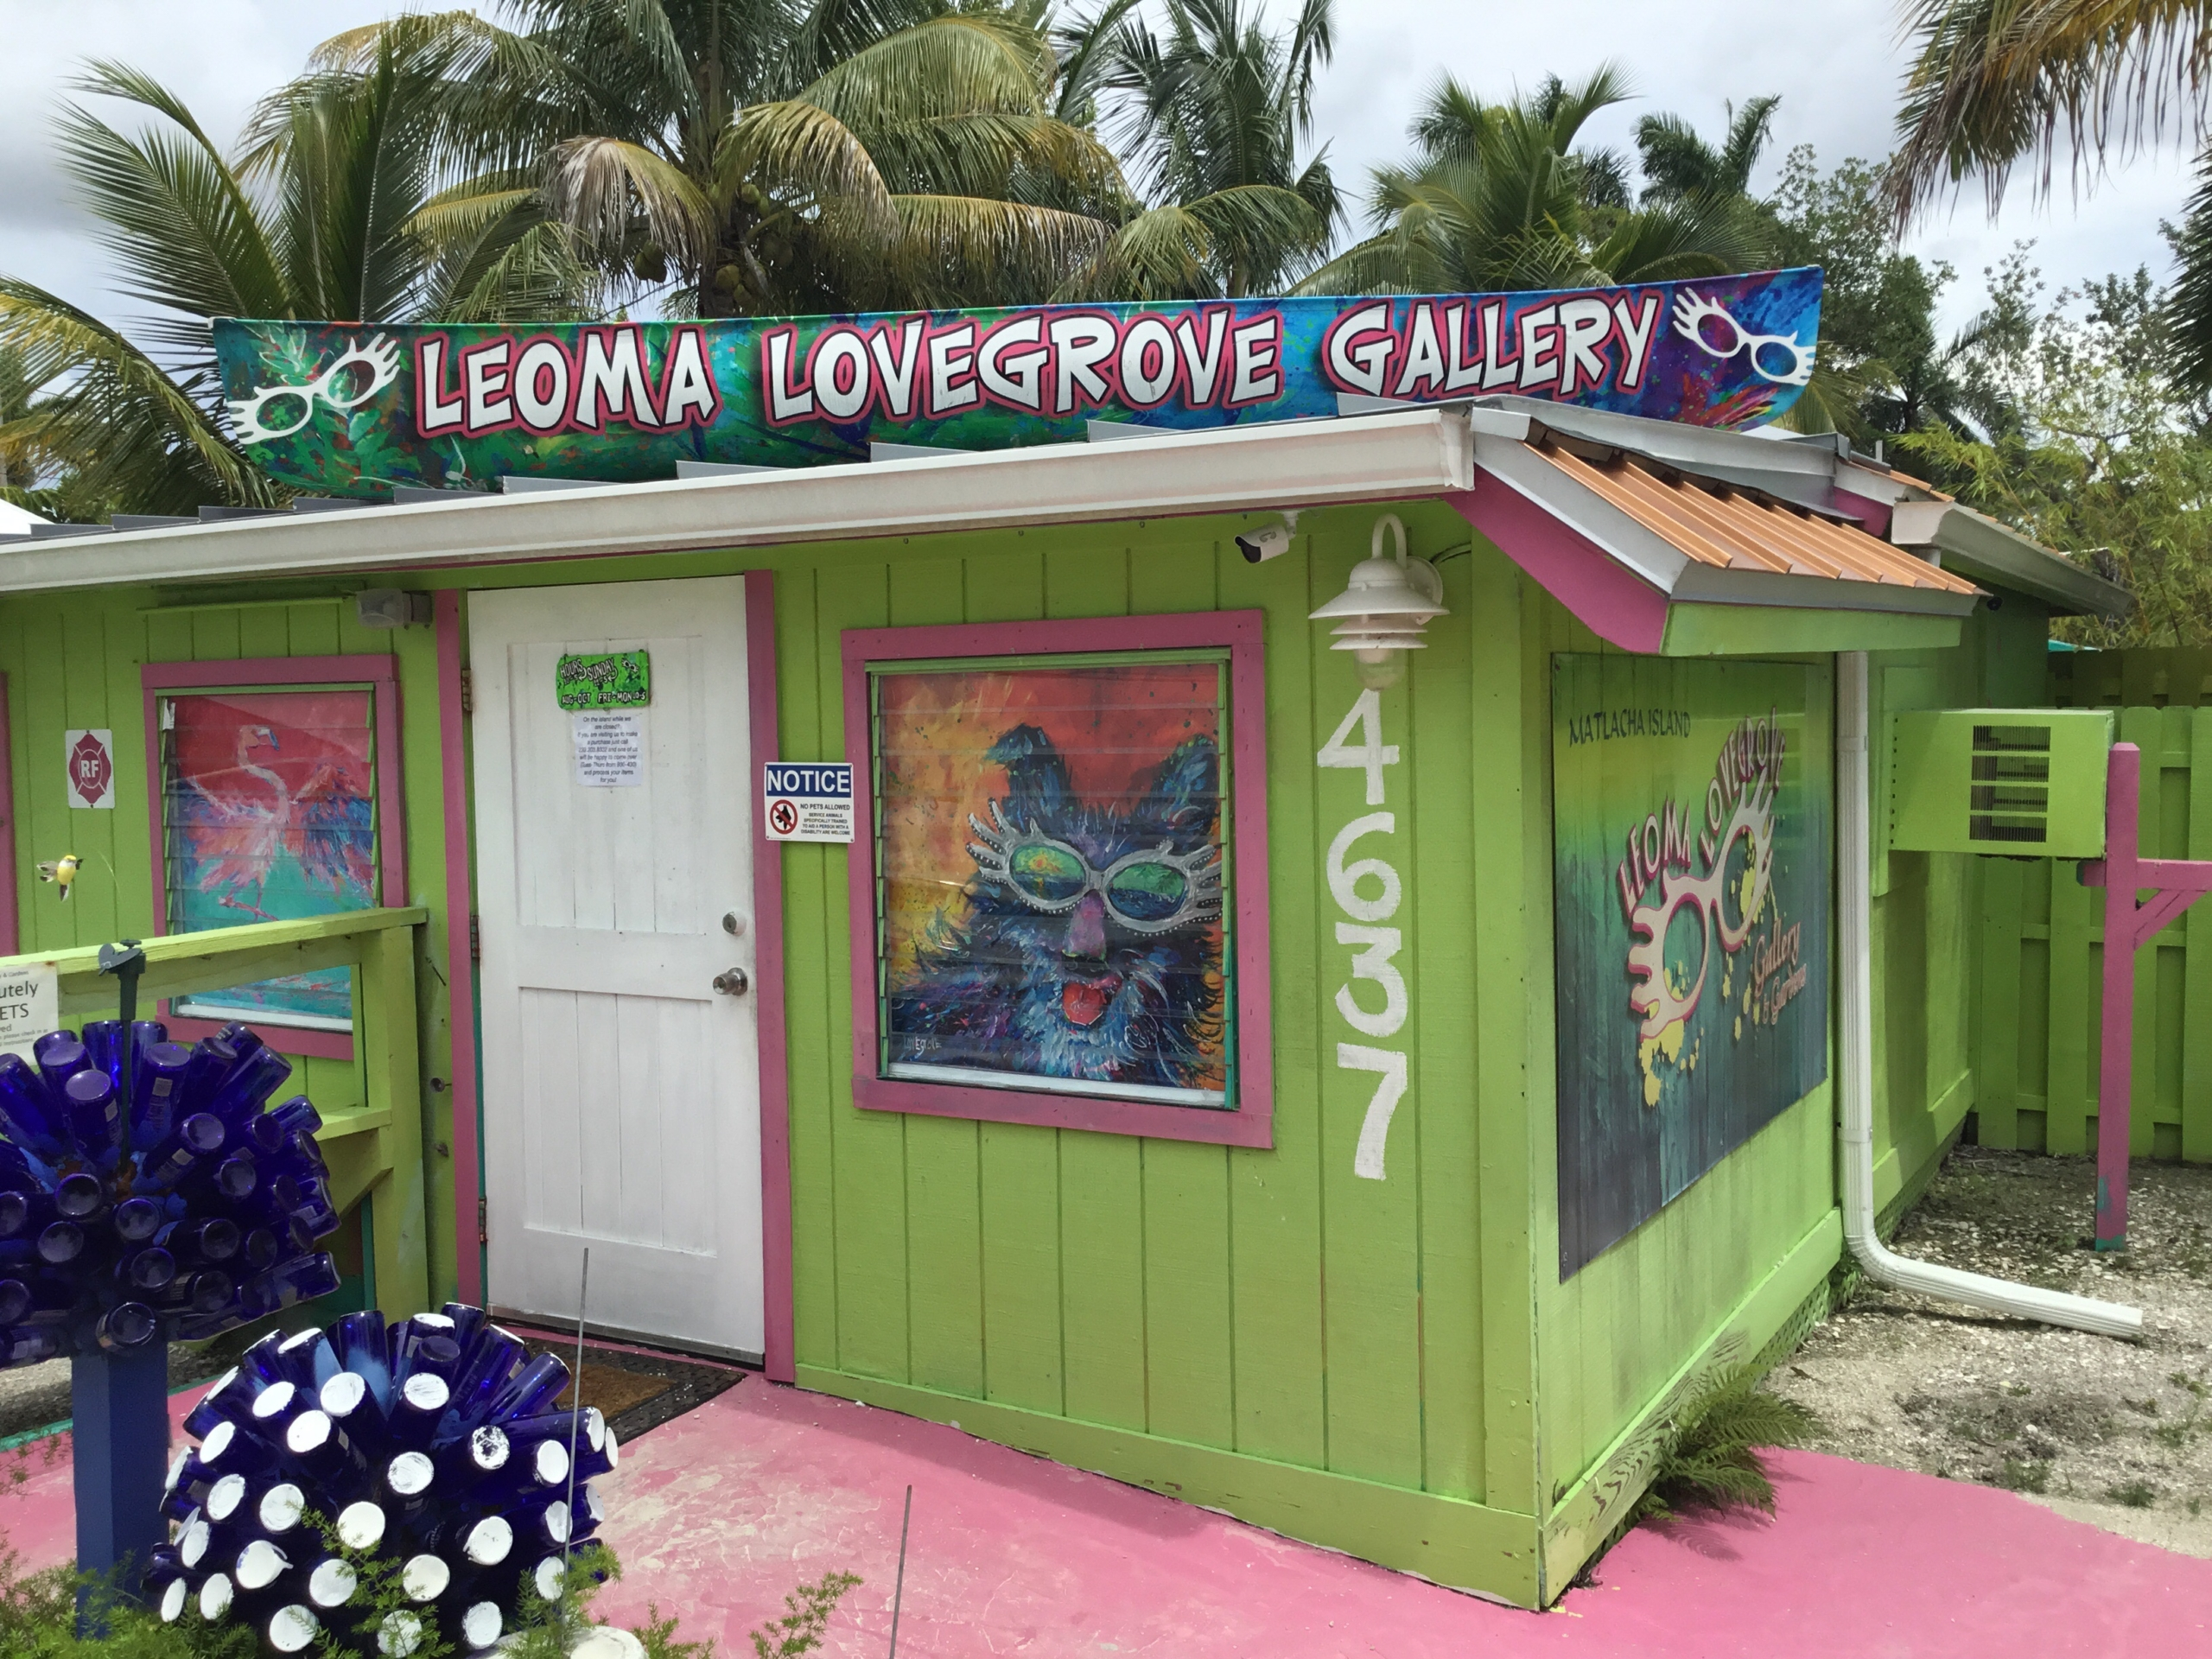 UPDATE: Lovegrove Gallery & Gardens Summer Hours